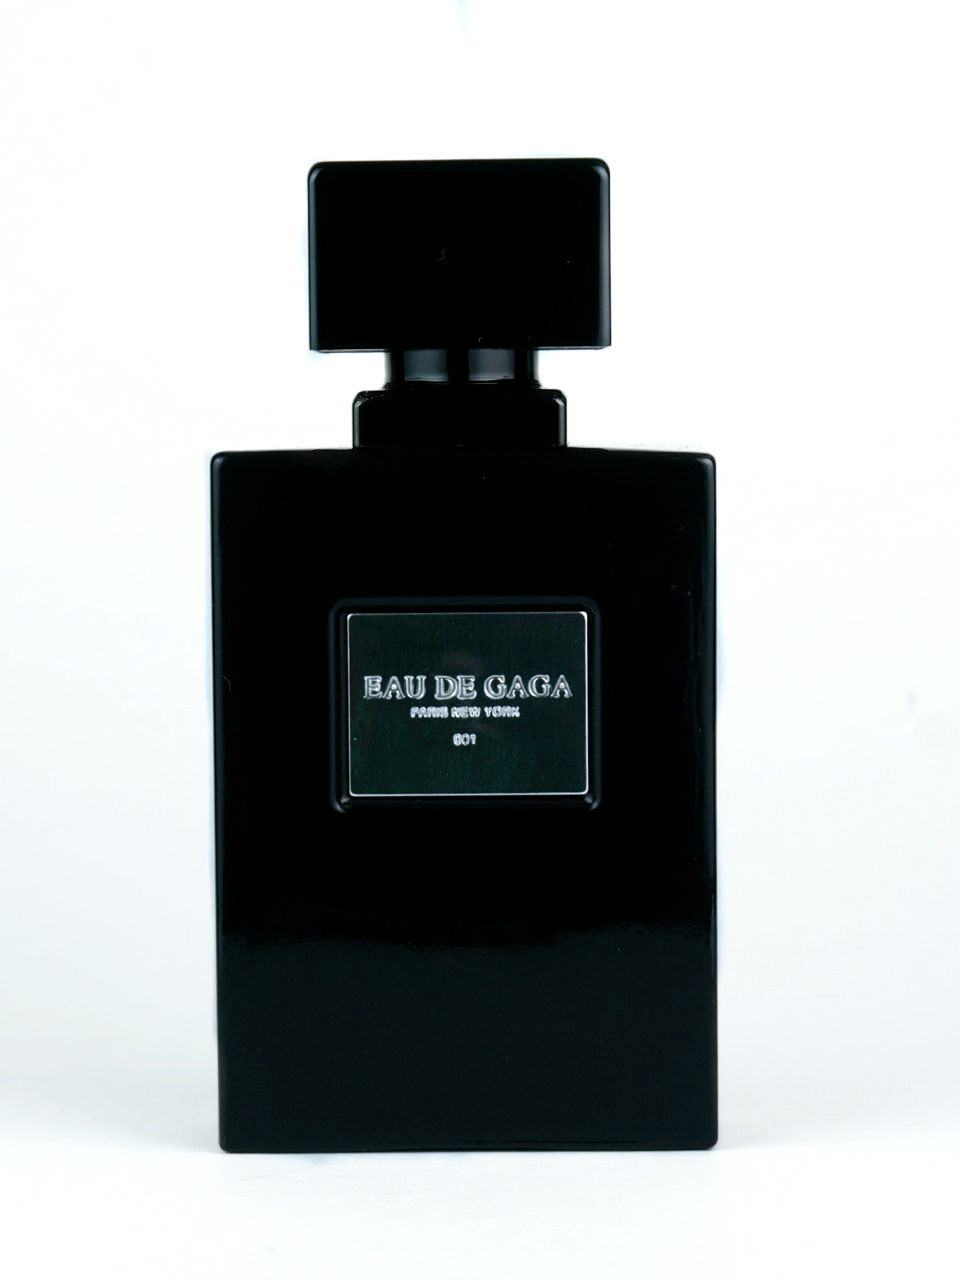 Lady Gaga Eau de Gaga 001: A Fragrance for Men & Women